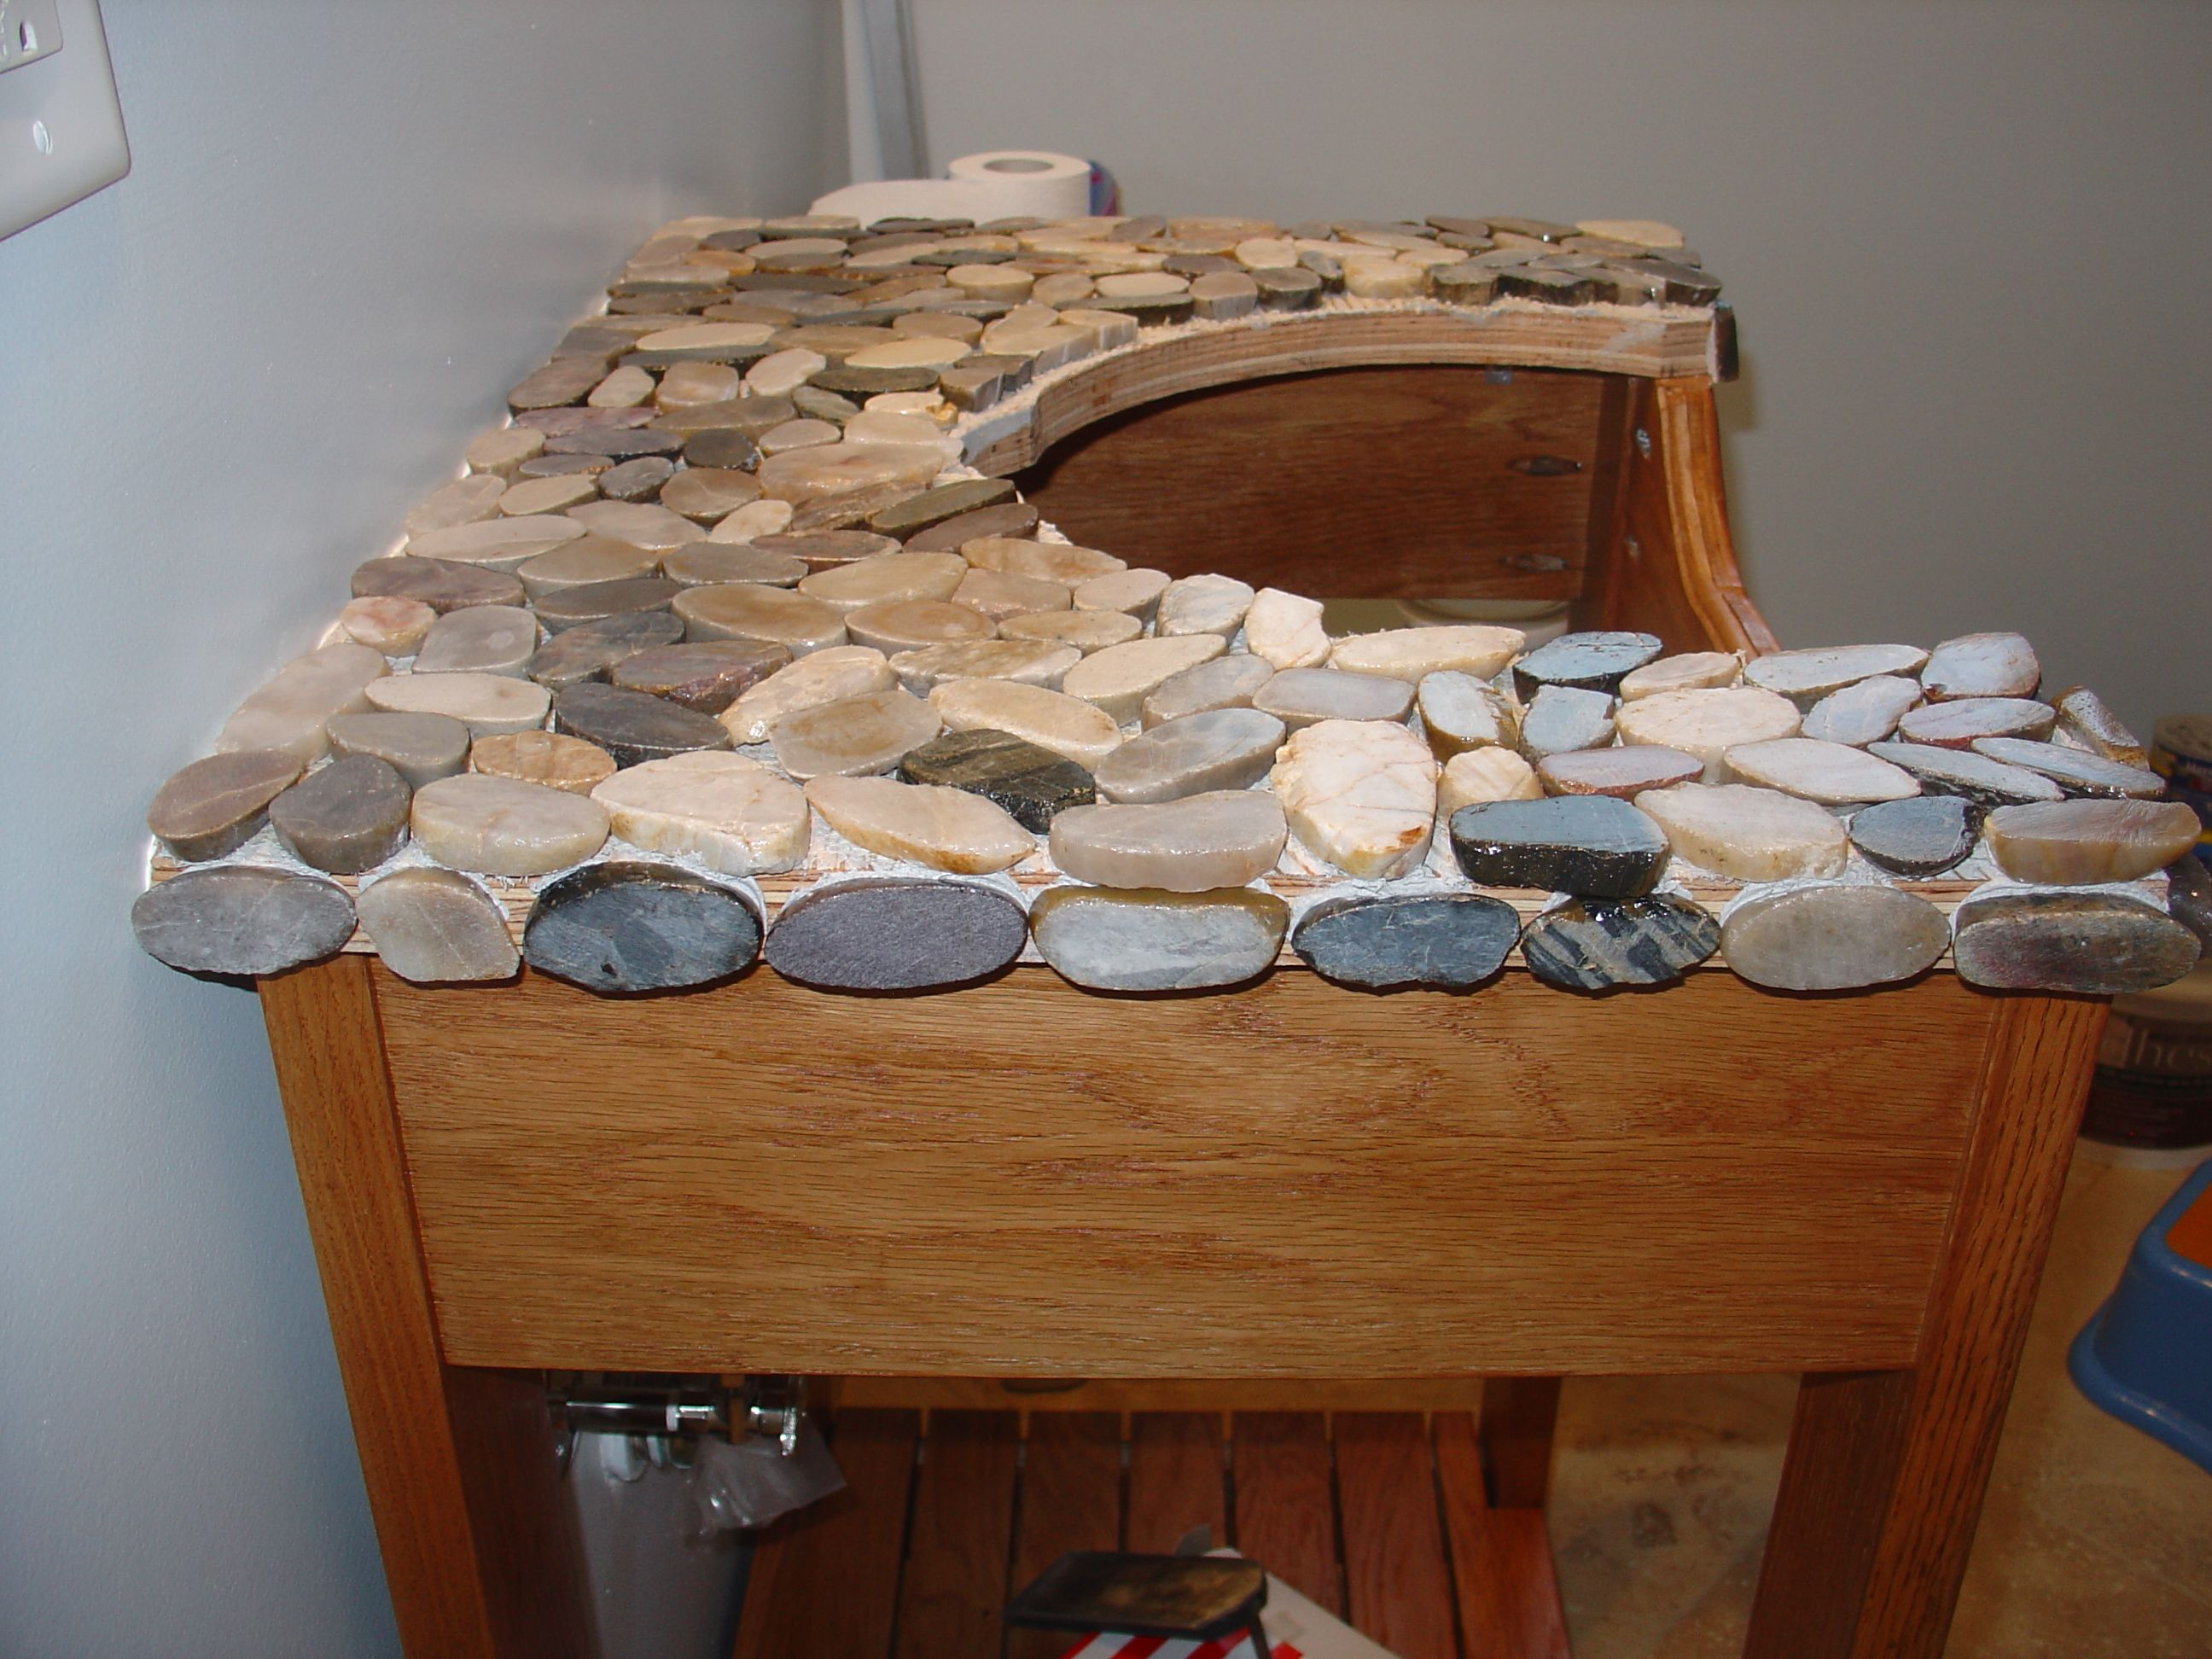 Bathroom Vanity Top Ideas bed & bath: stylish stone vanity top and cabinet for diy bathroom